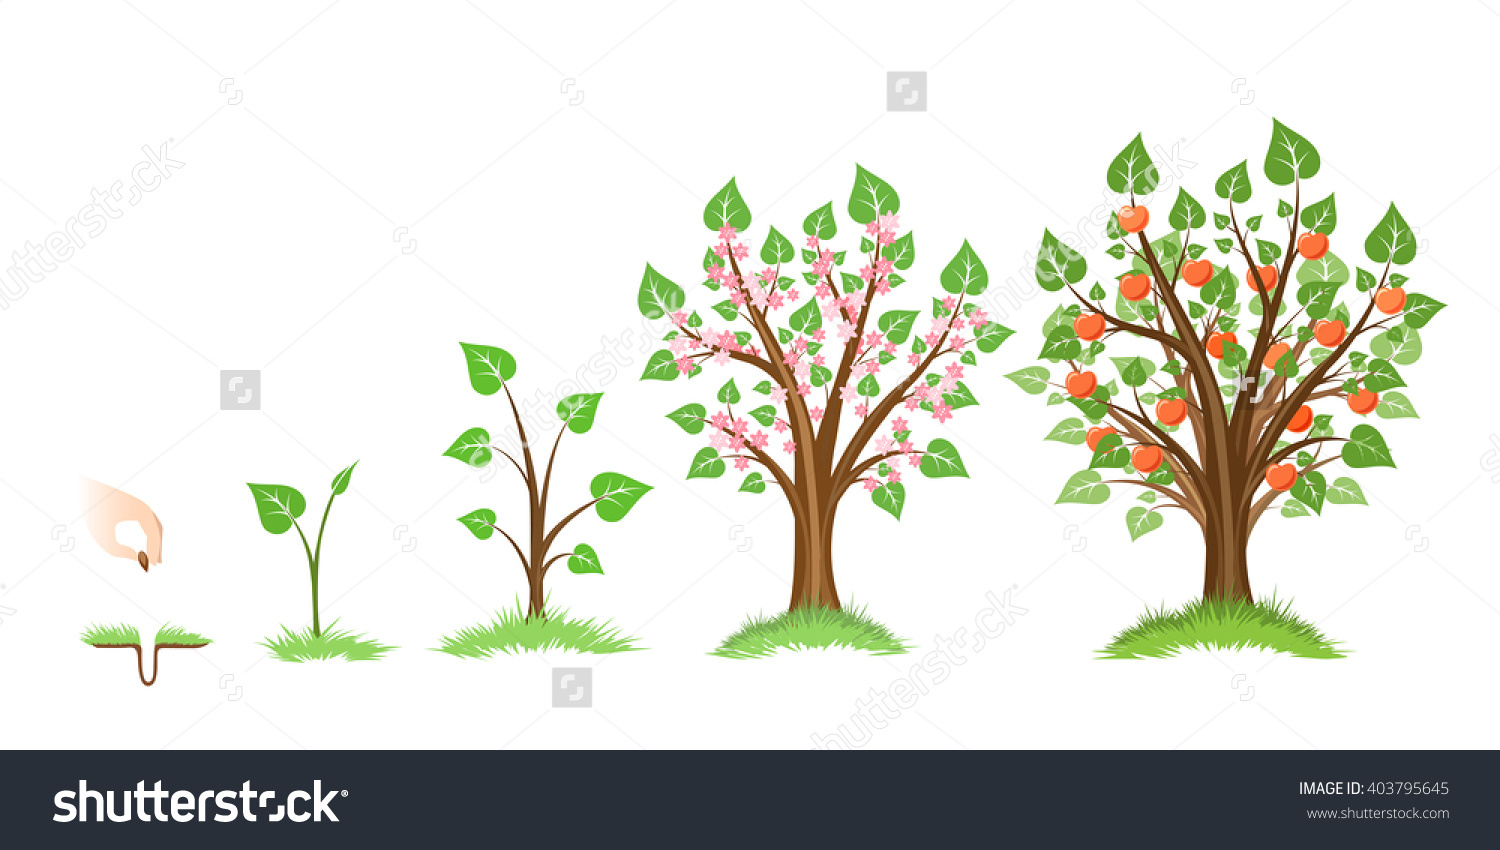 Apple Tree Growth Cycle Plant Cycle Stock Vector 403795645.